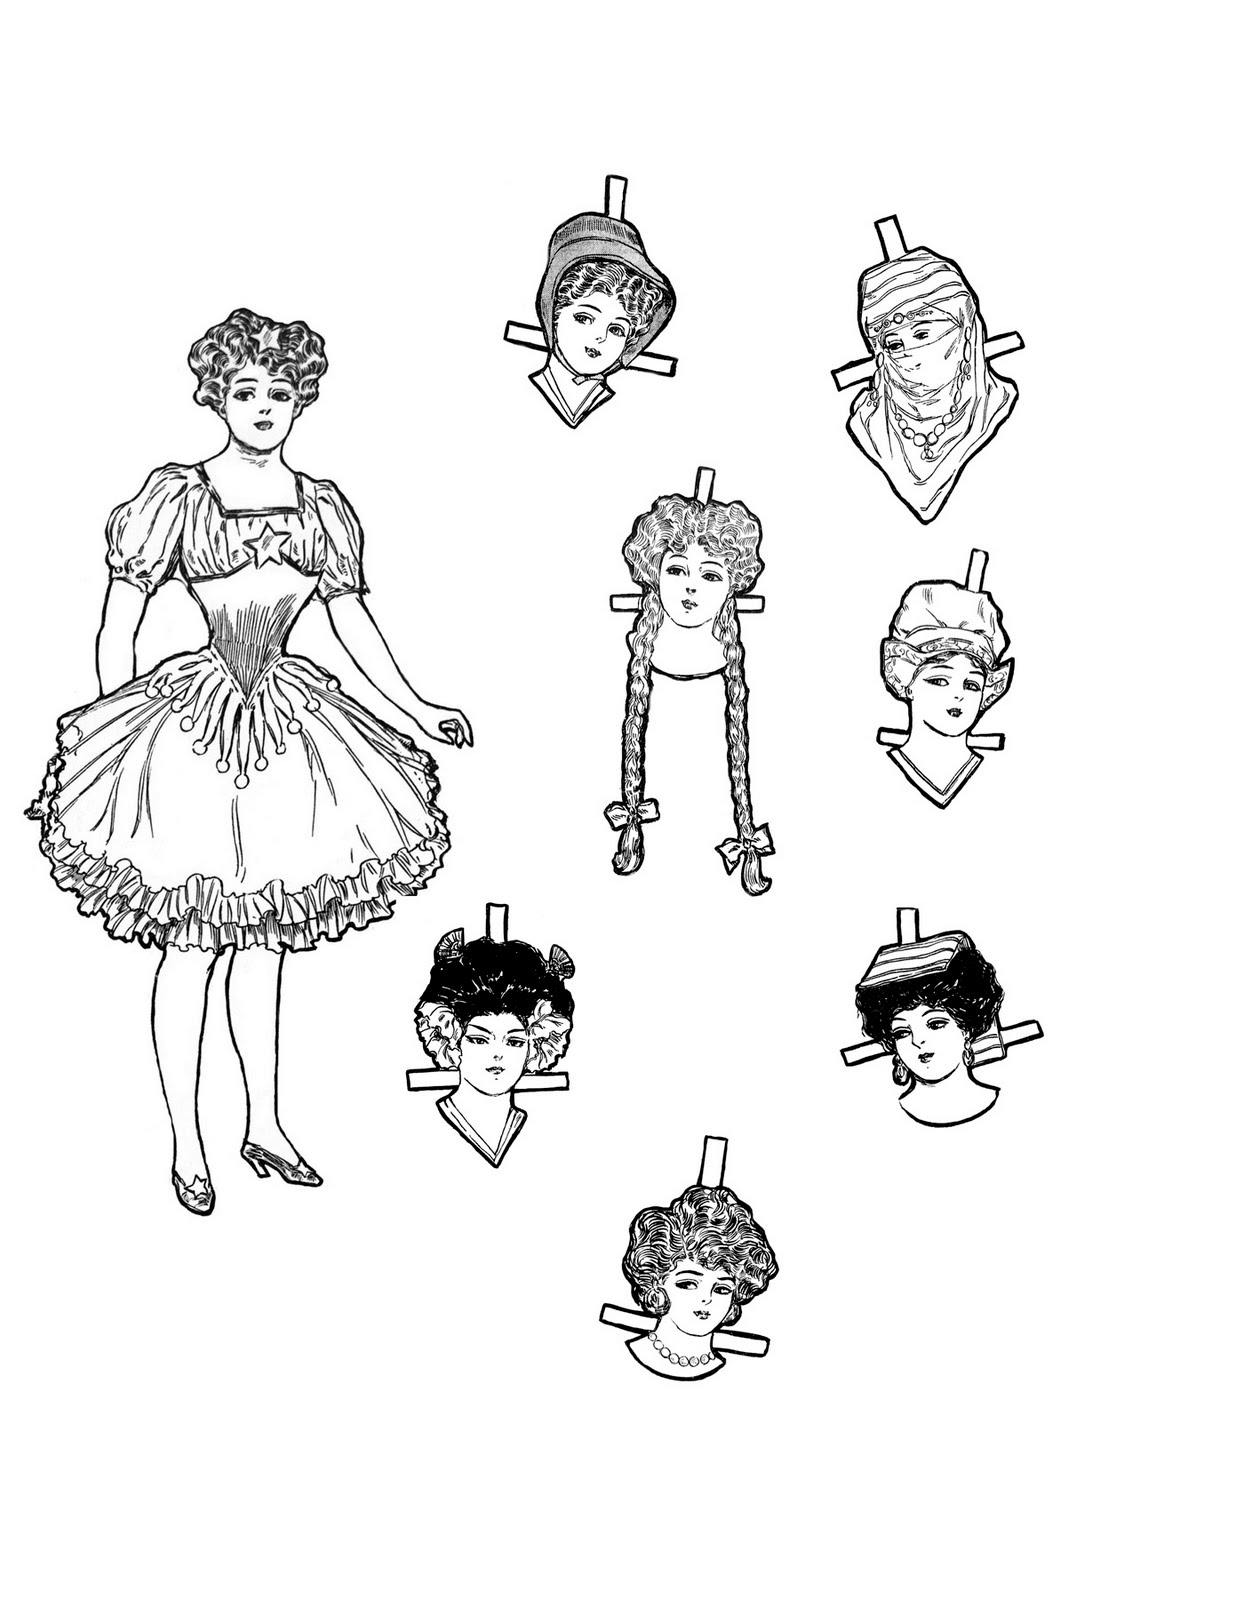 Christmas Fairy Paper Doll Coloring Page! - The Graphics Fairy